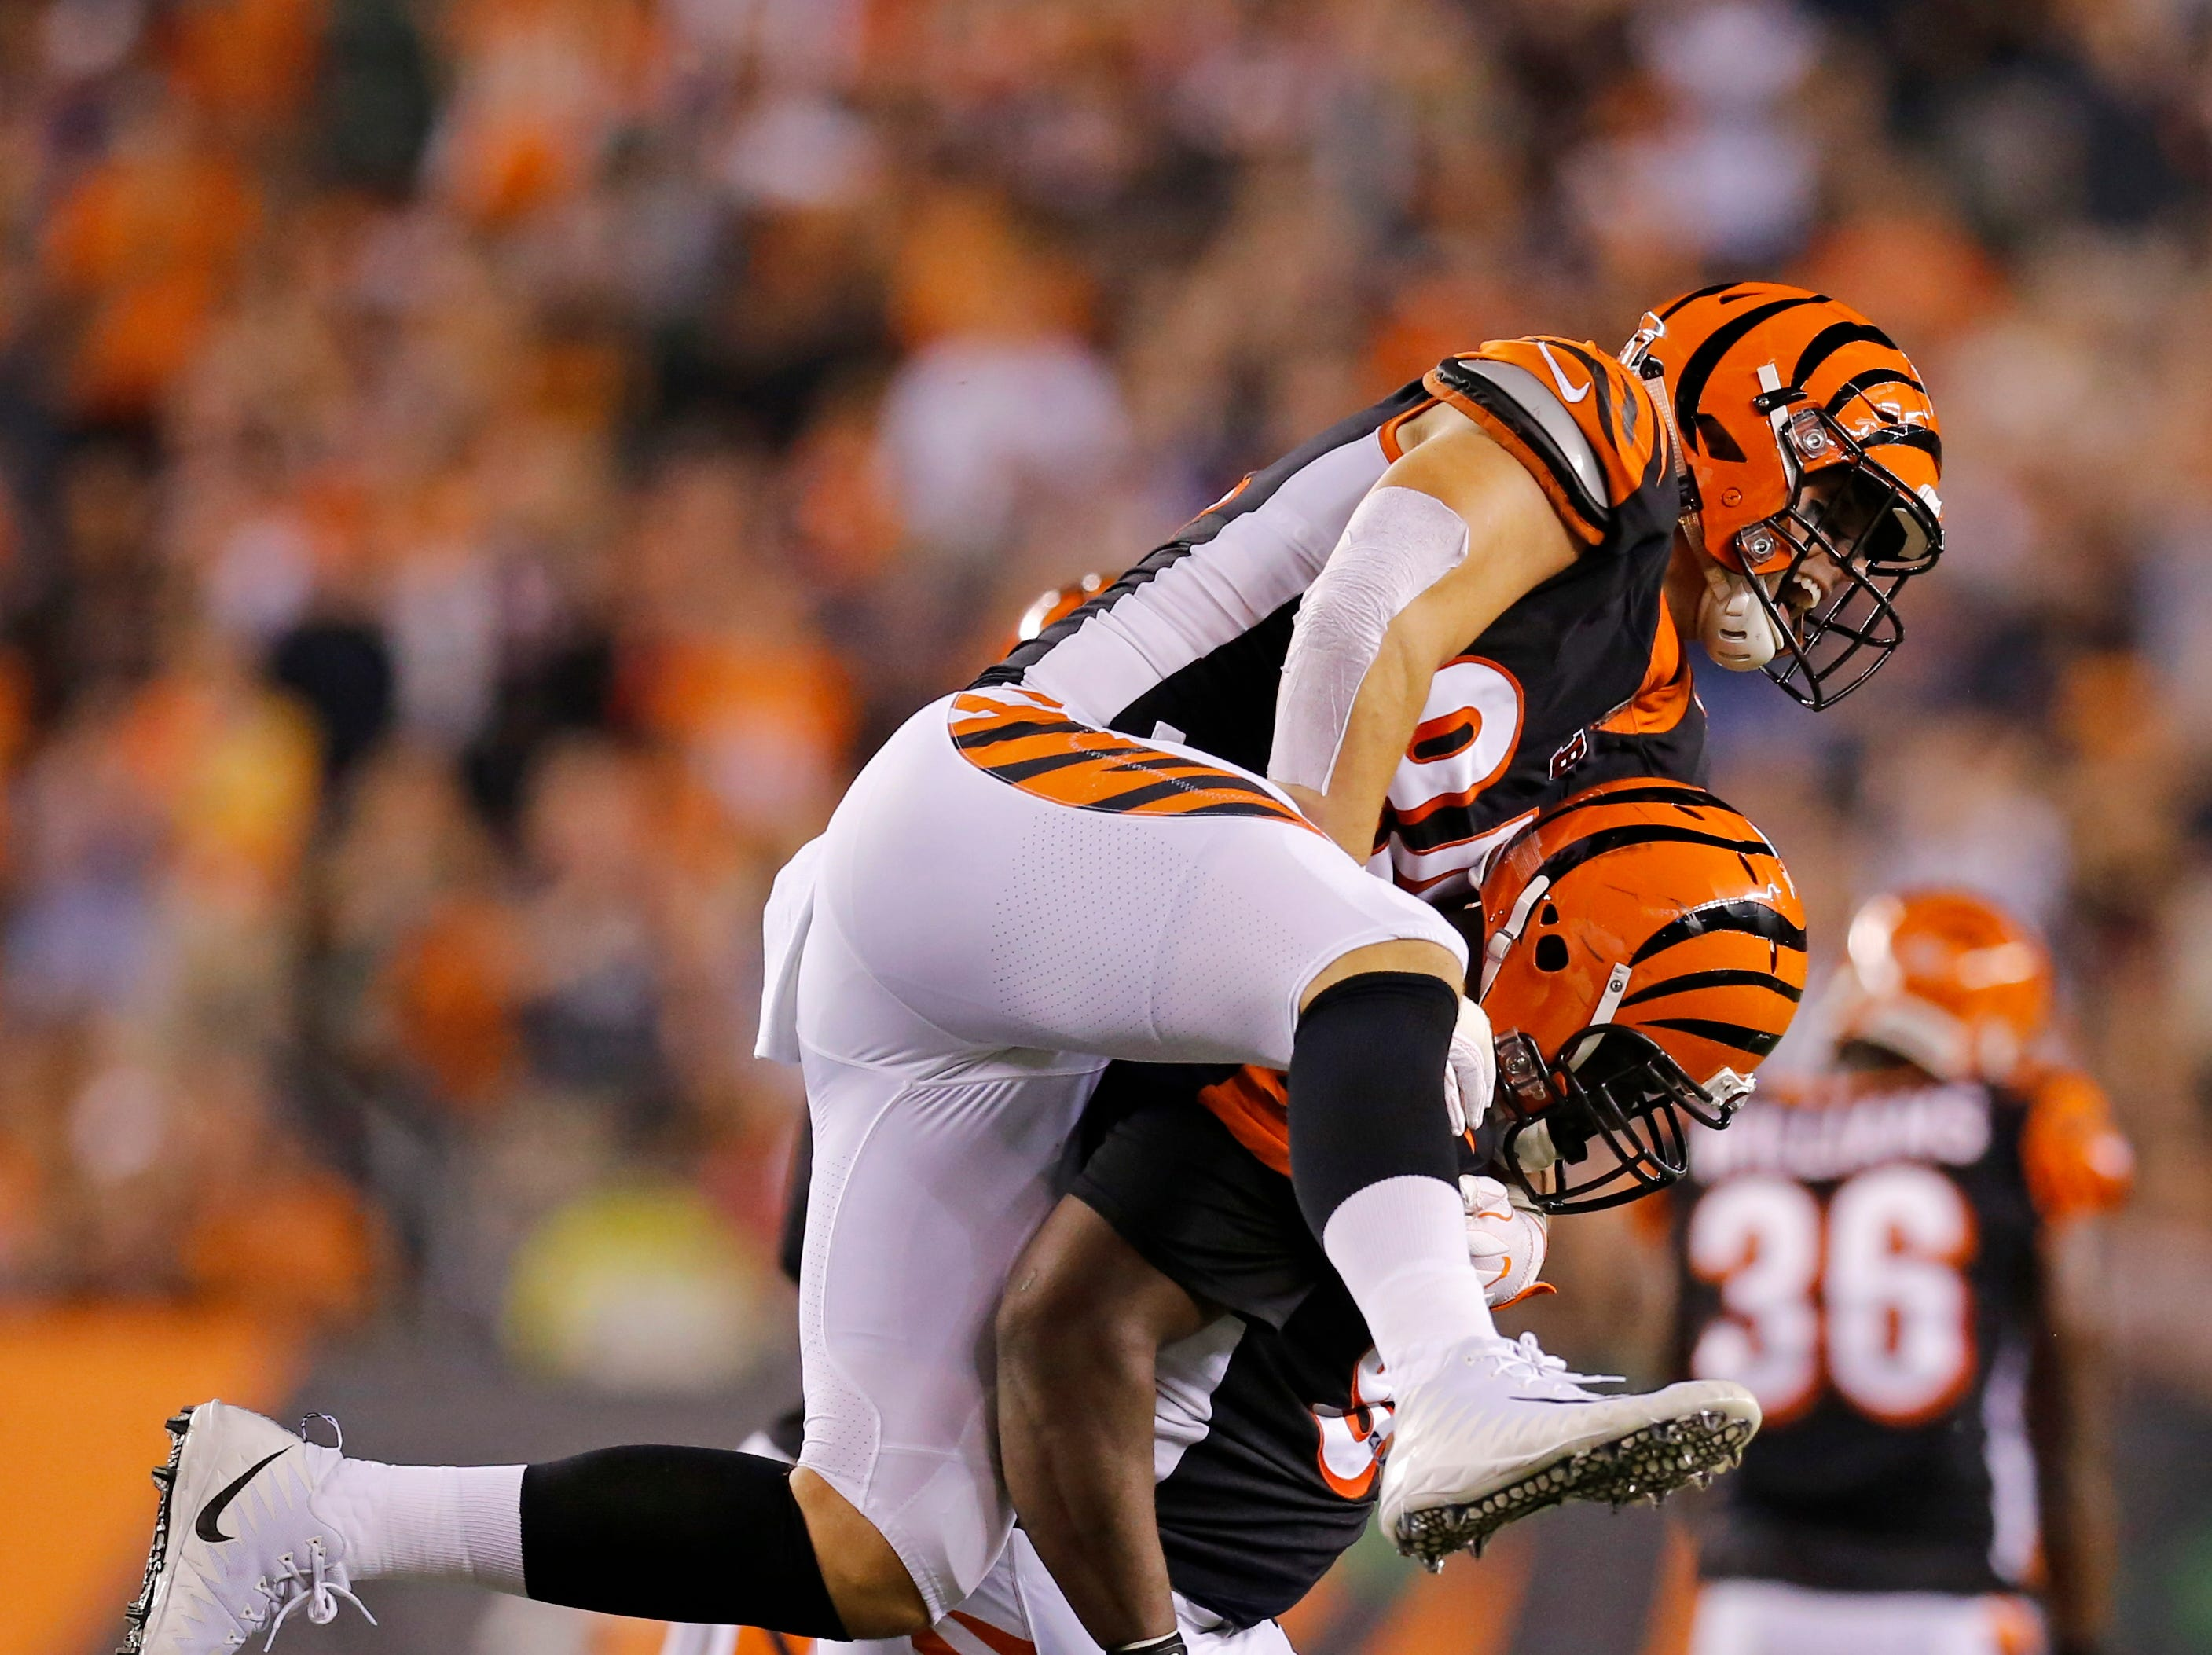 Cincinnati Bengals defensive end Sam Hubbard (94) jumps on the back of defensive tackle Geno Atkins (97) after a sack in the first quarter of the NFL Week 2 game between the Cincinnati Bengals and the Baltimore Ravens at Paul Brown Stadium in downtown Cincinnati on Thursday, Sept. 13, 2018. The Bengals led 28-14 at halftime.